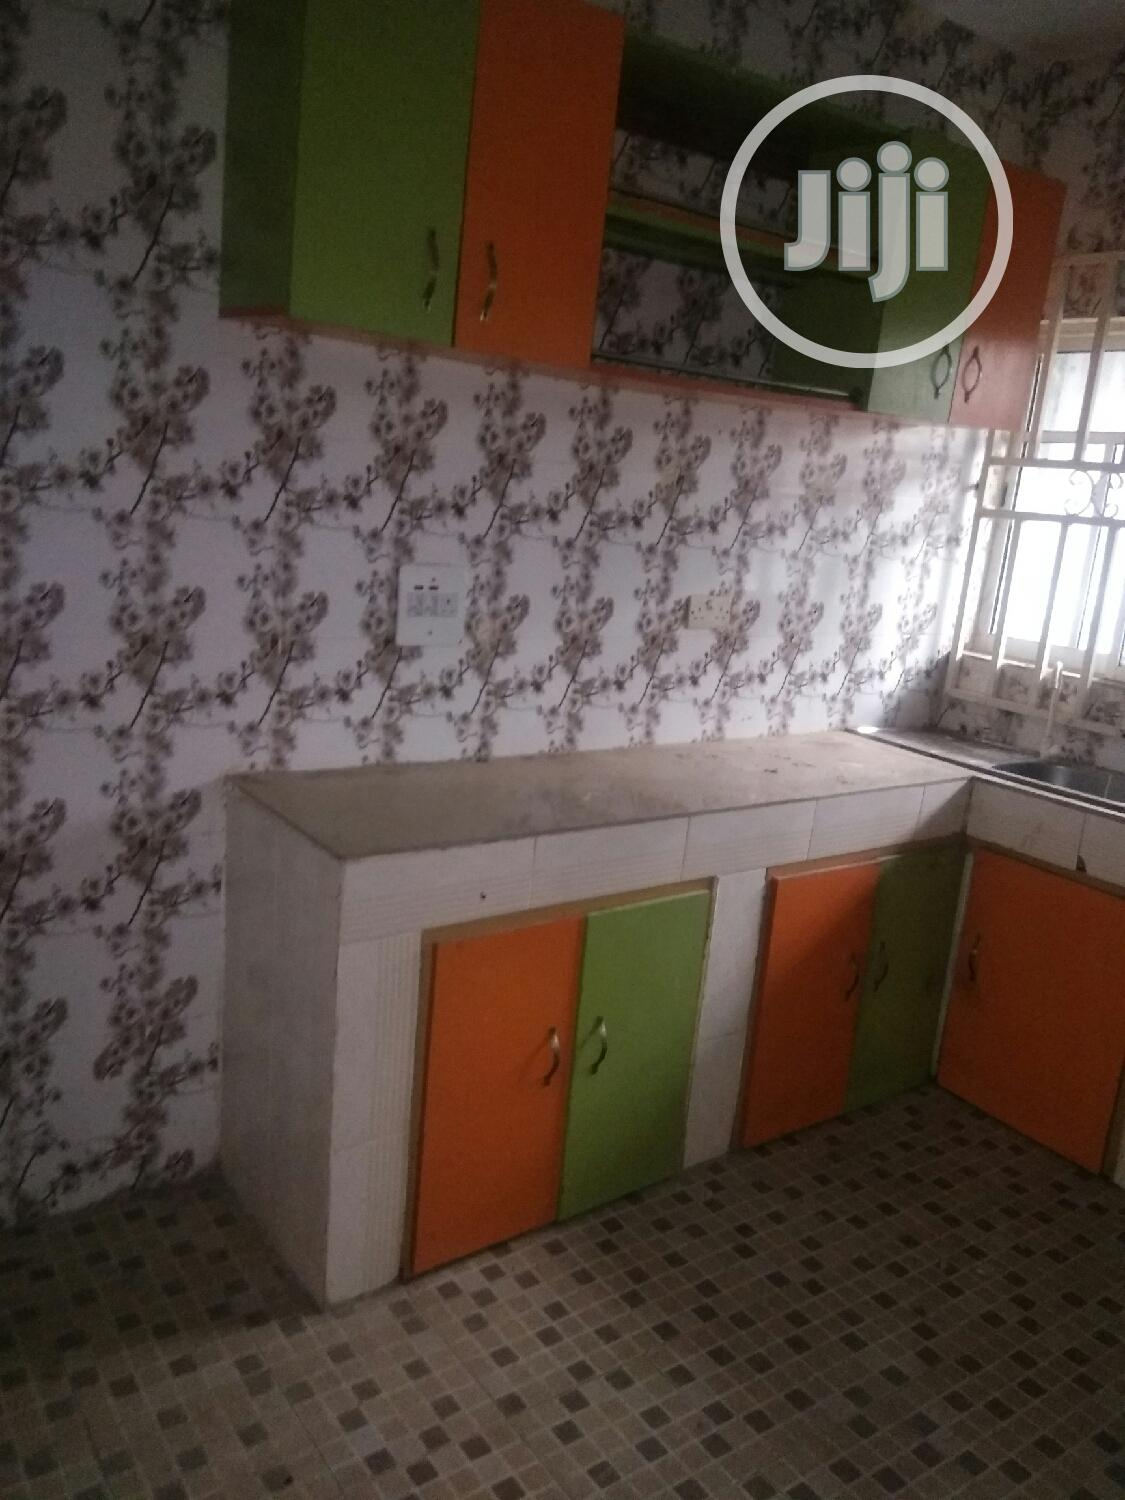 3 Bedroom Flat To Let No Landkord In Compound Pay N Move In | Houses & Apartments For Rent for sale in Benin City, Edo State, Nigeria